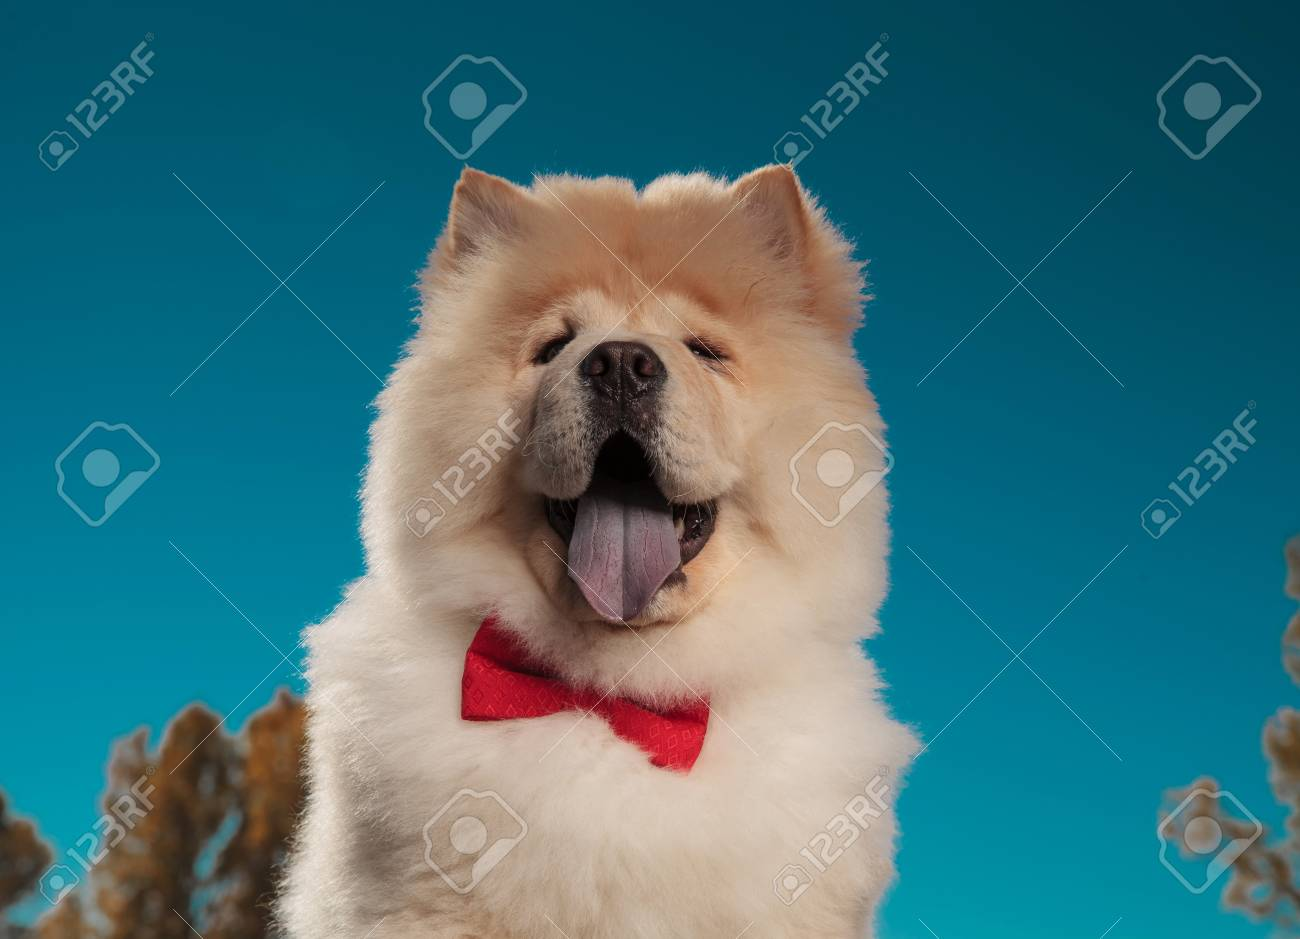 portrait of an adorable chow chow puppy dog wearing bowtie and